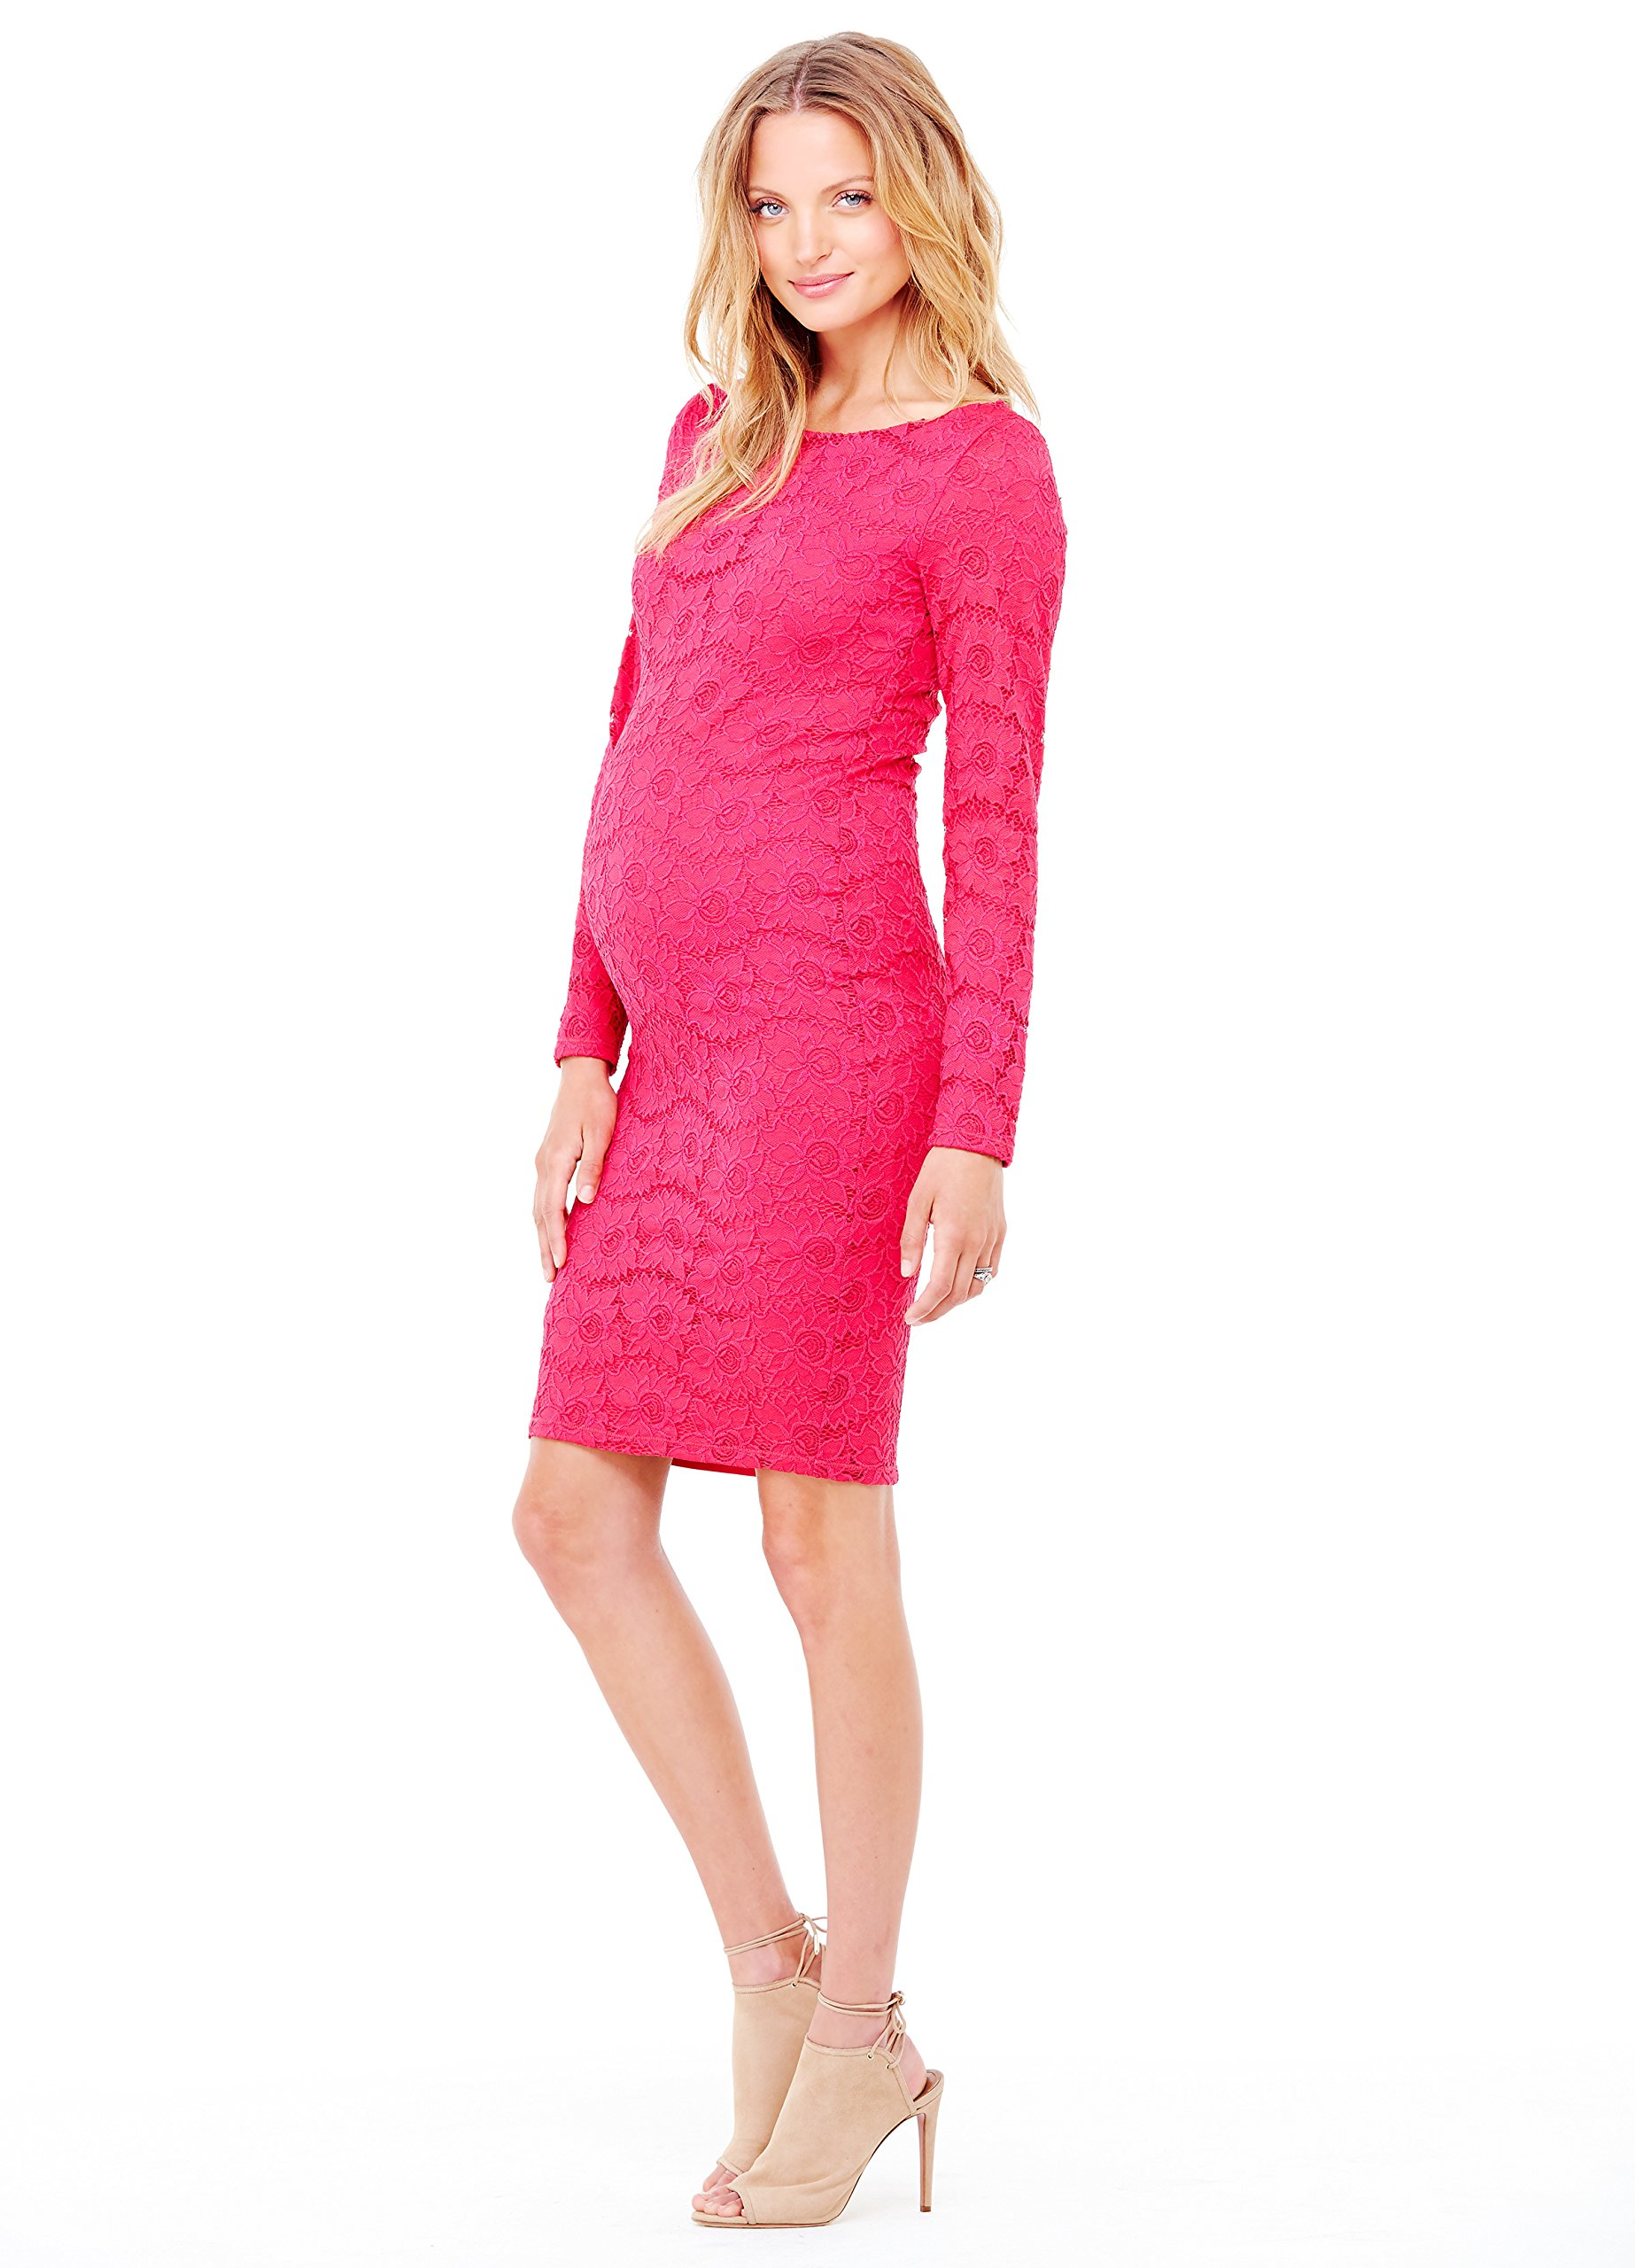 Ingrid & Isabel Women's Maternity Boat Neck Lace Dress, Berry, X-Small